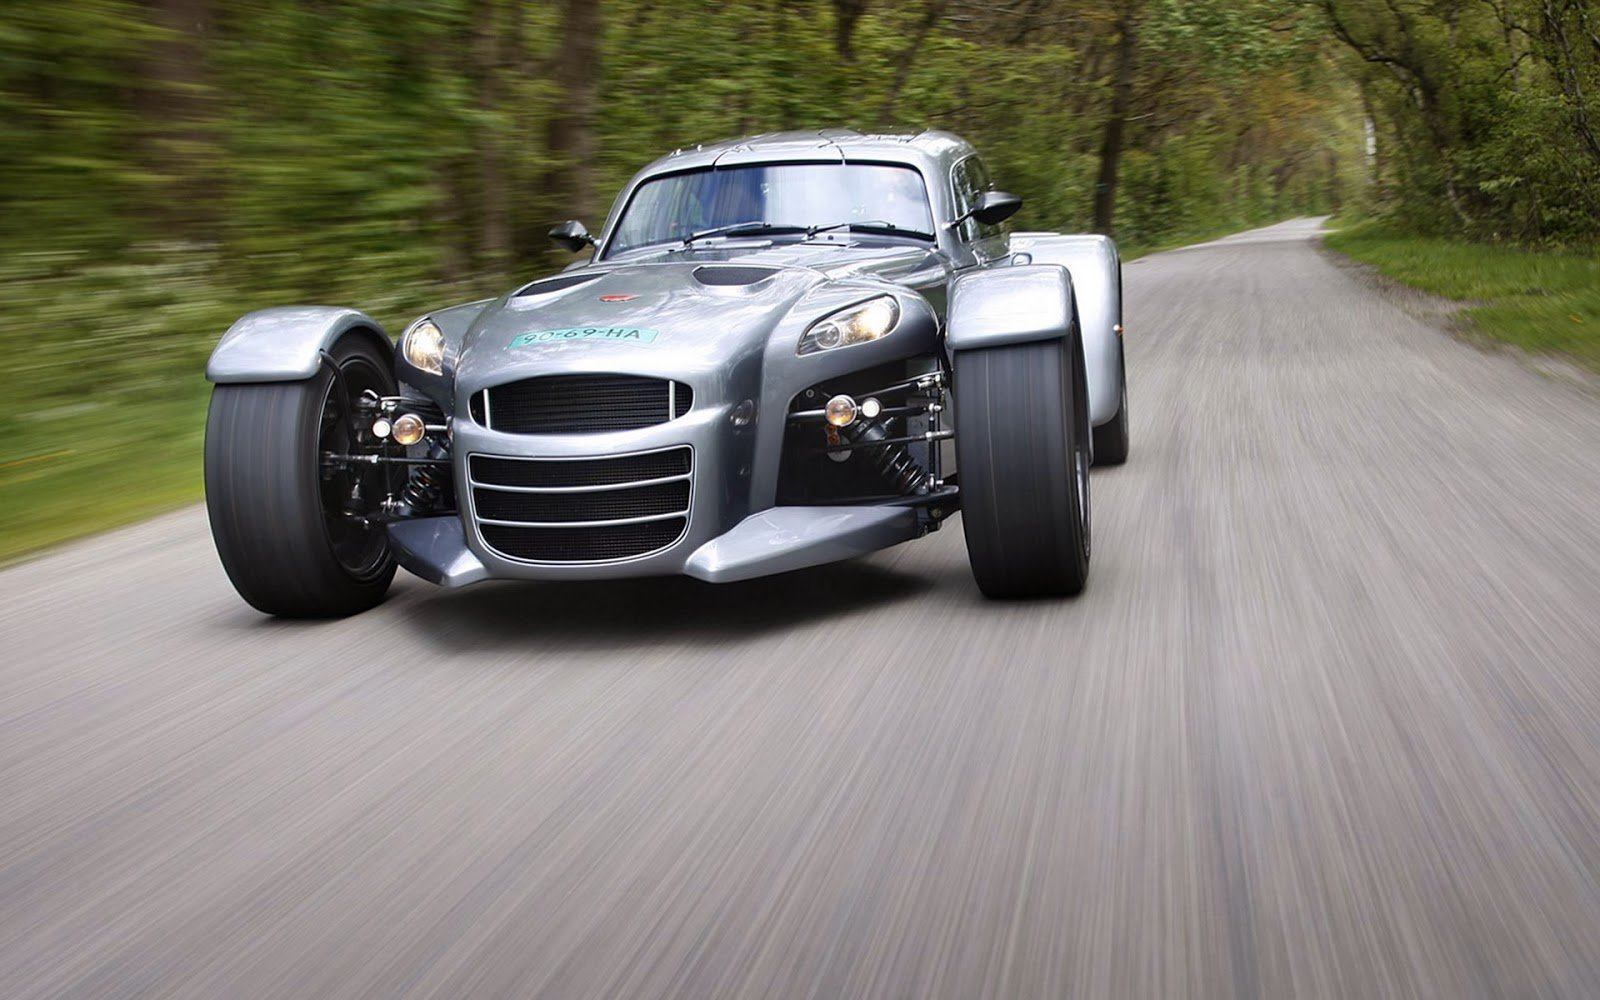 New Wallpapers Of Beautiful Cars Donkervoort D8 Gt On This Month